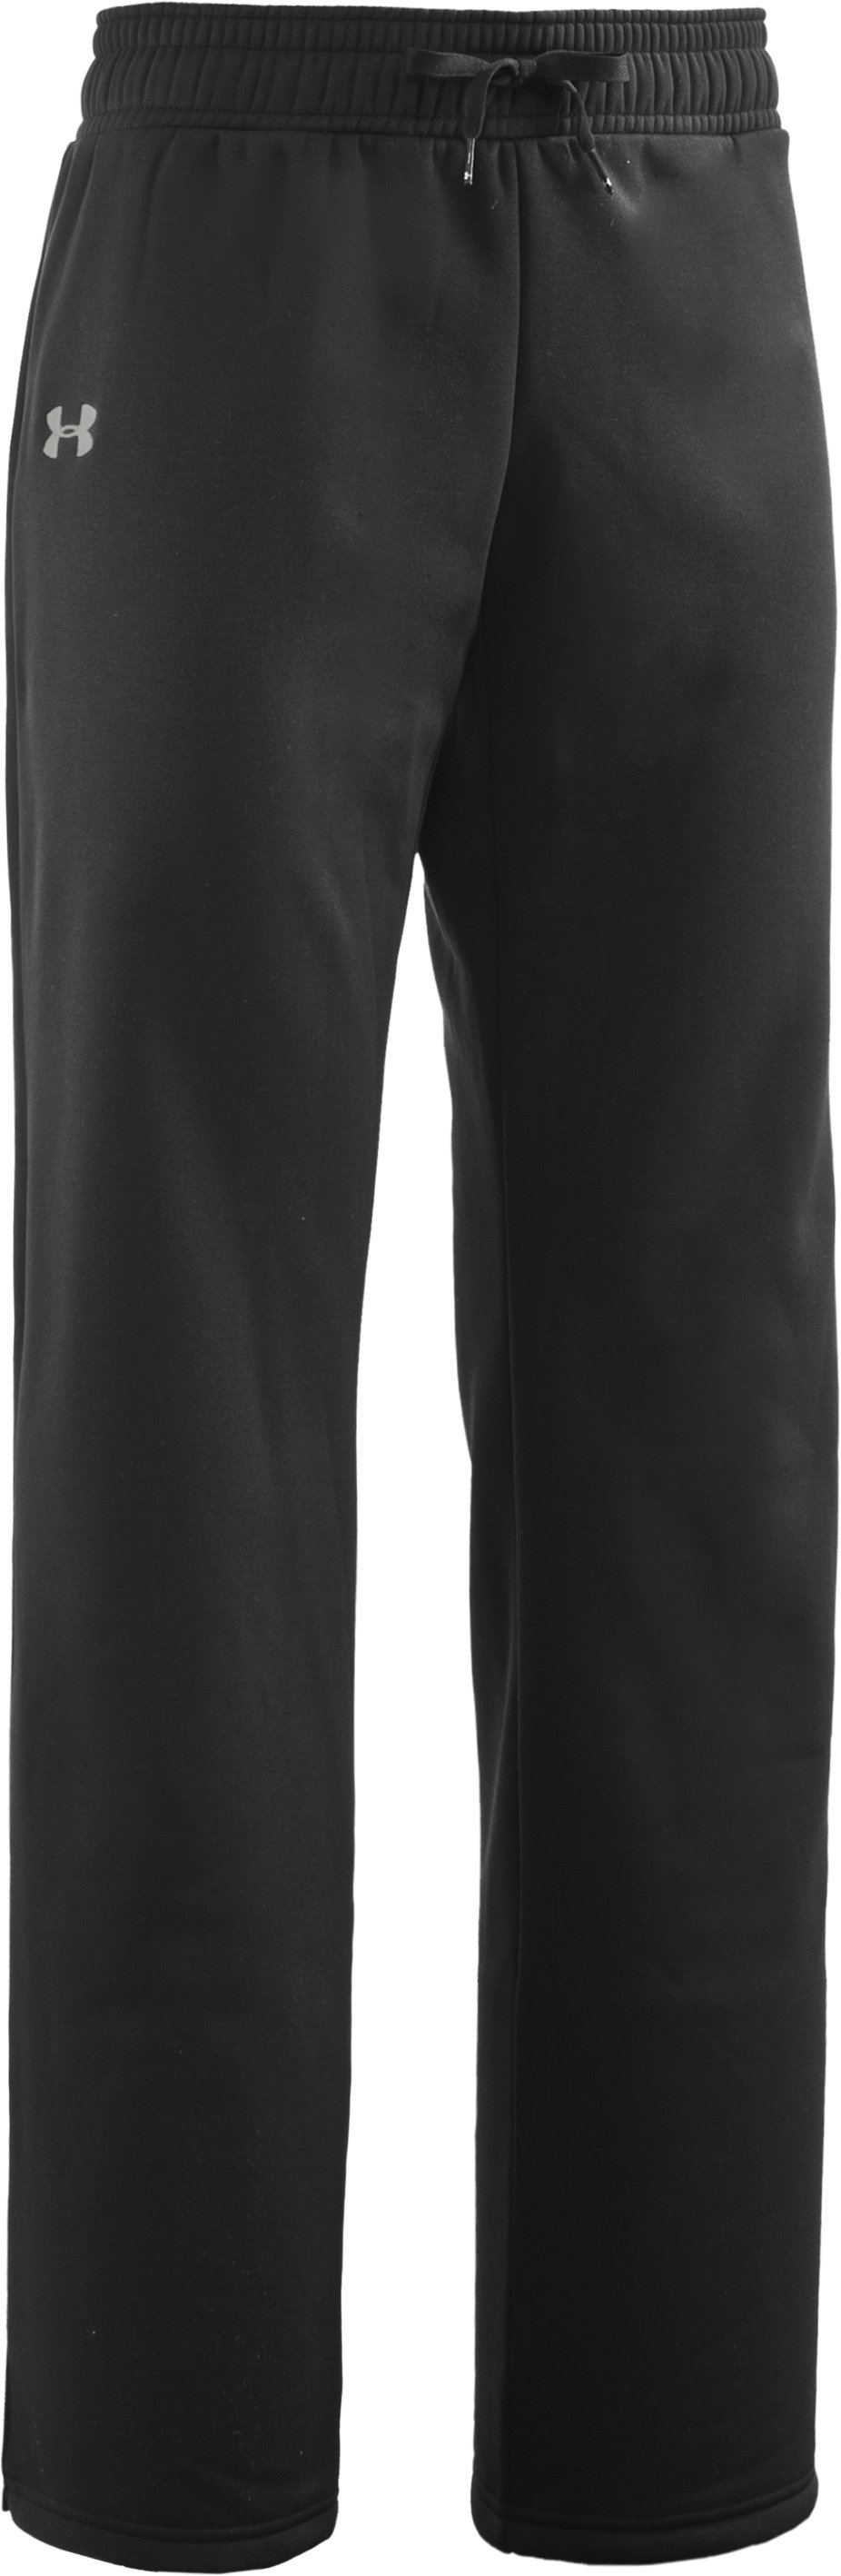 "Women's 34"" Armour® Fleece Pants - Tall, Black , undefined"